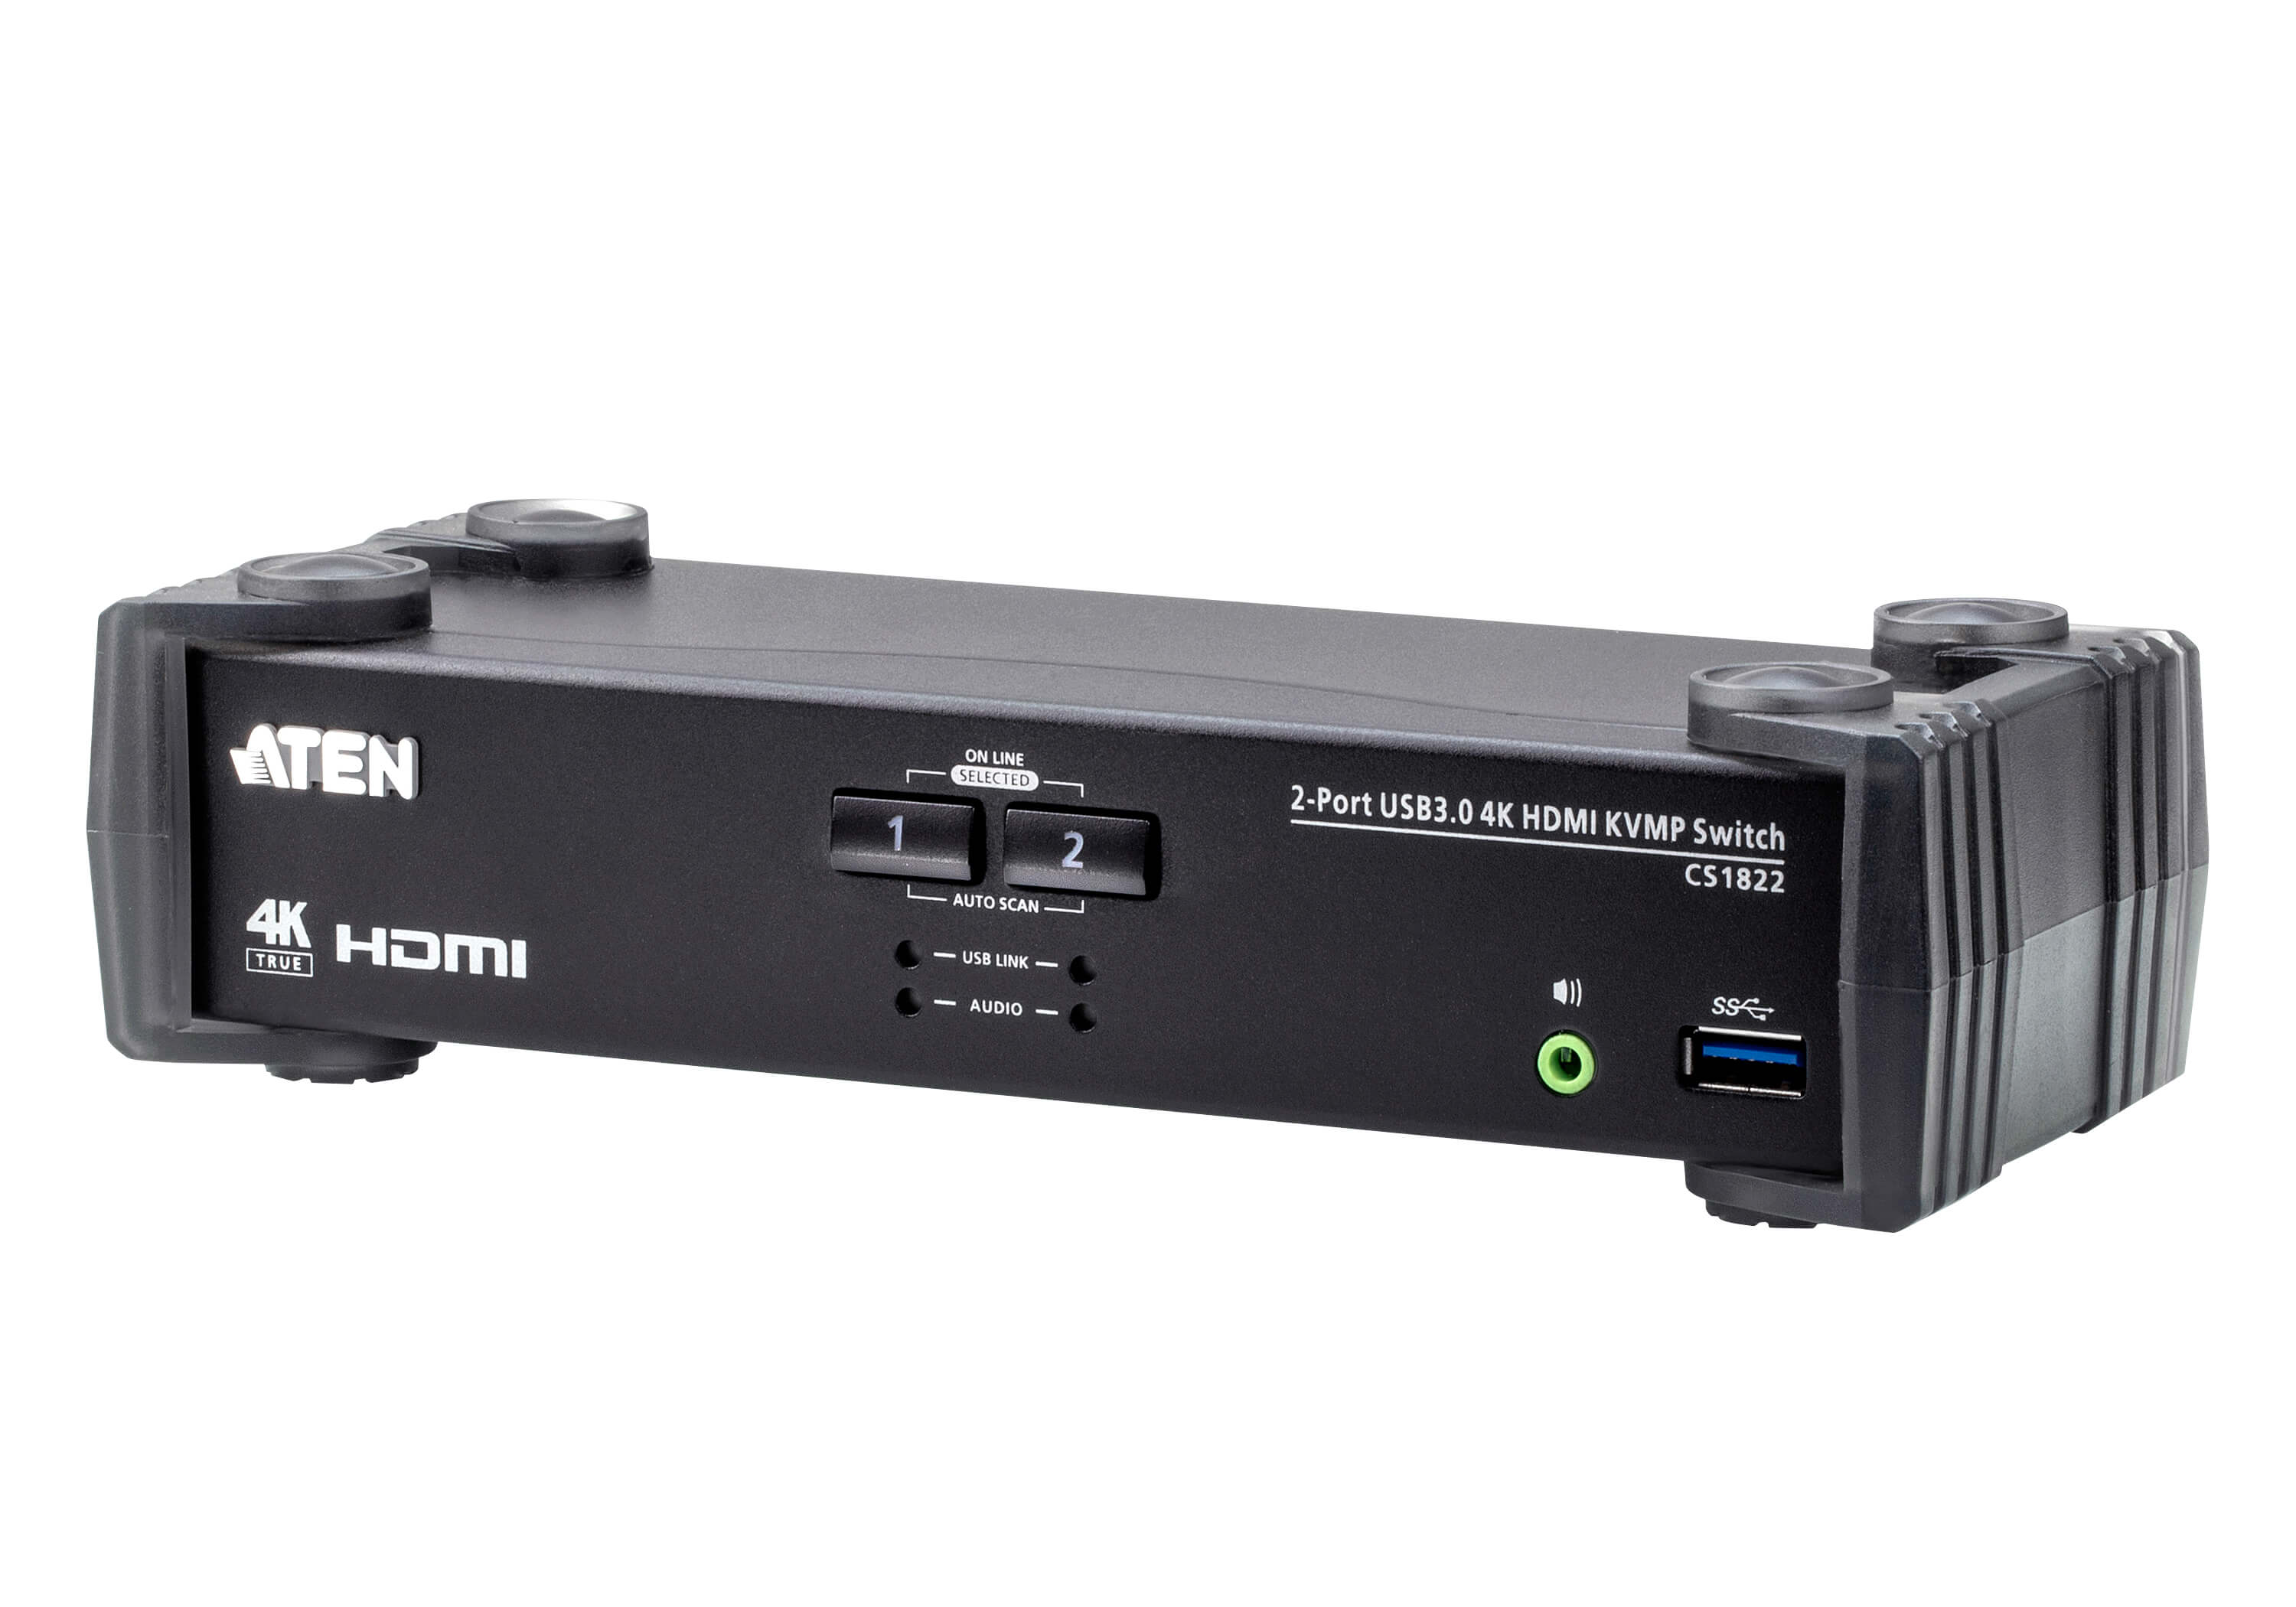 2-Port USB 3.0 4K HDMI KVMP™ Switch